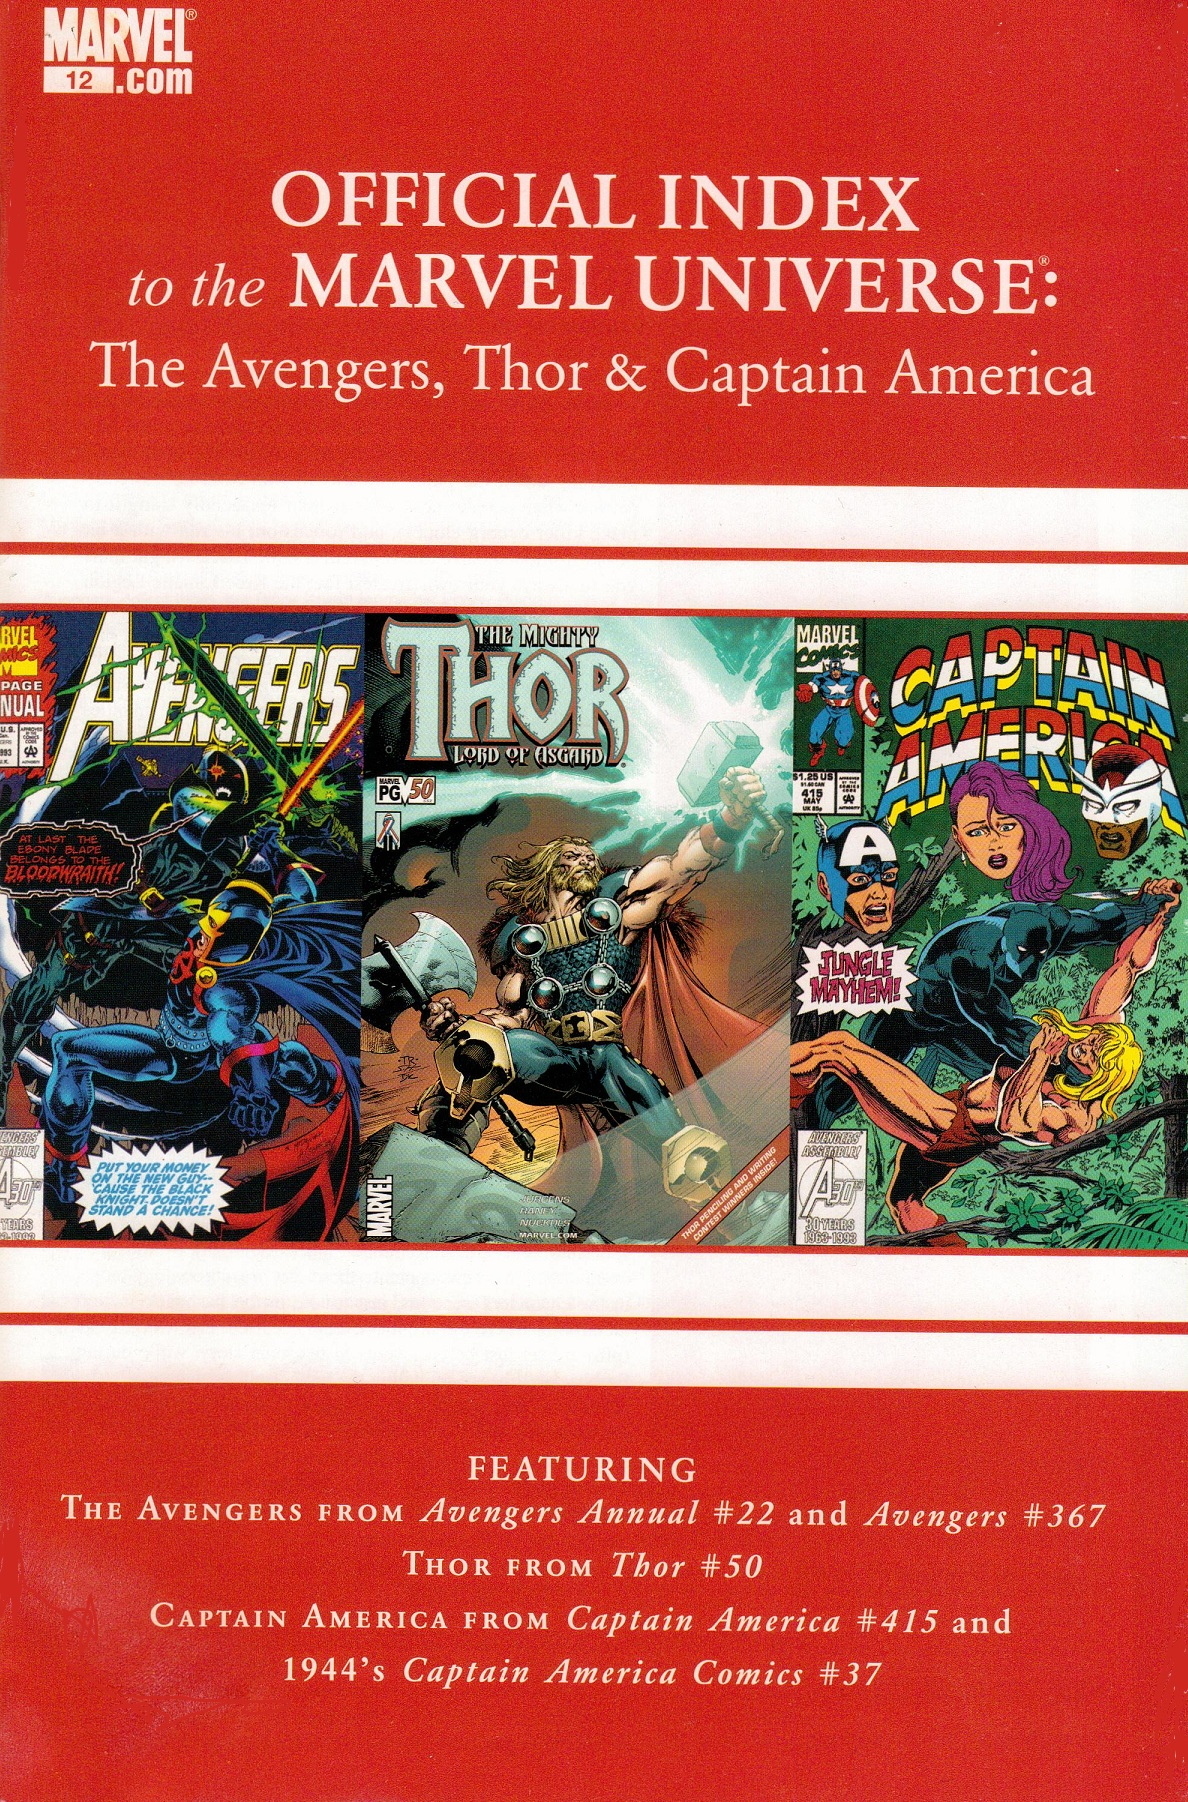 Avengers, Thor & Captain America: Official Index to the Marvel Universe Vol 1 12